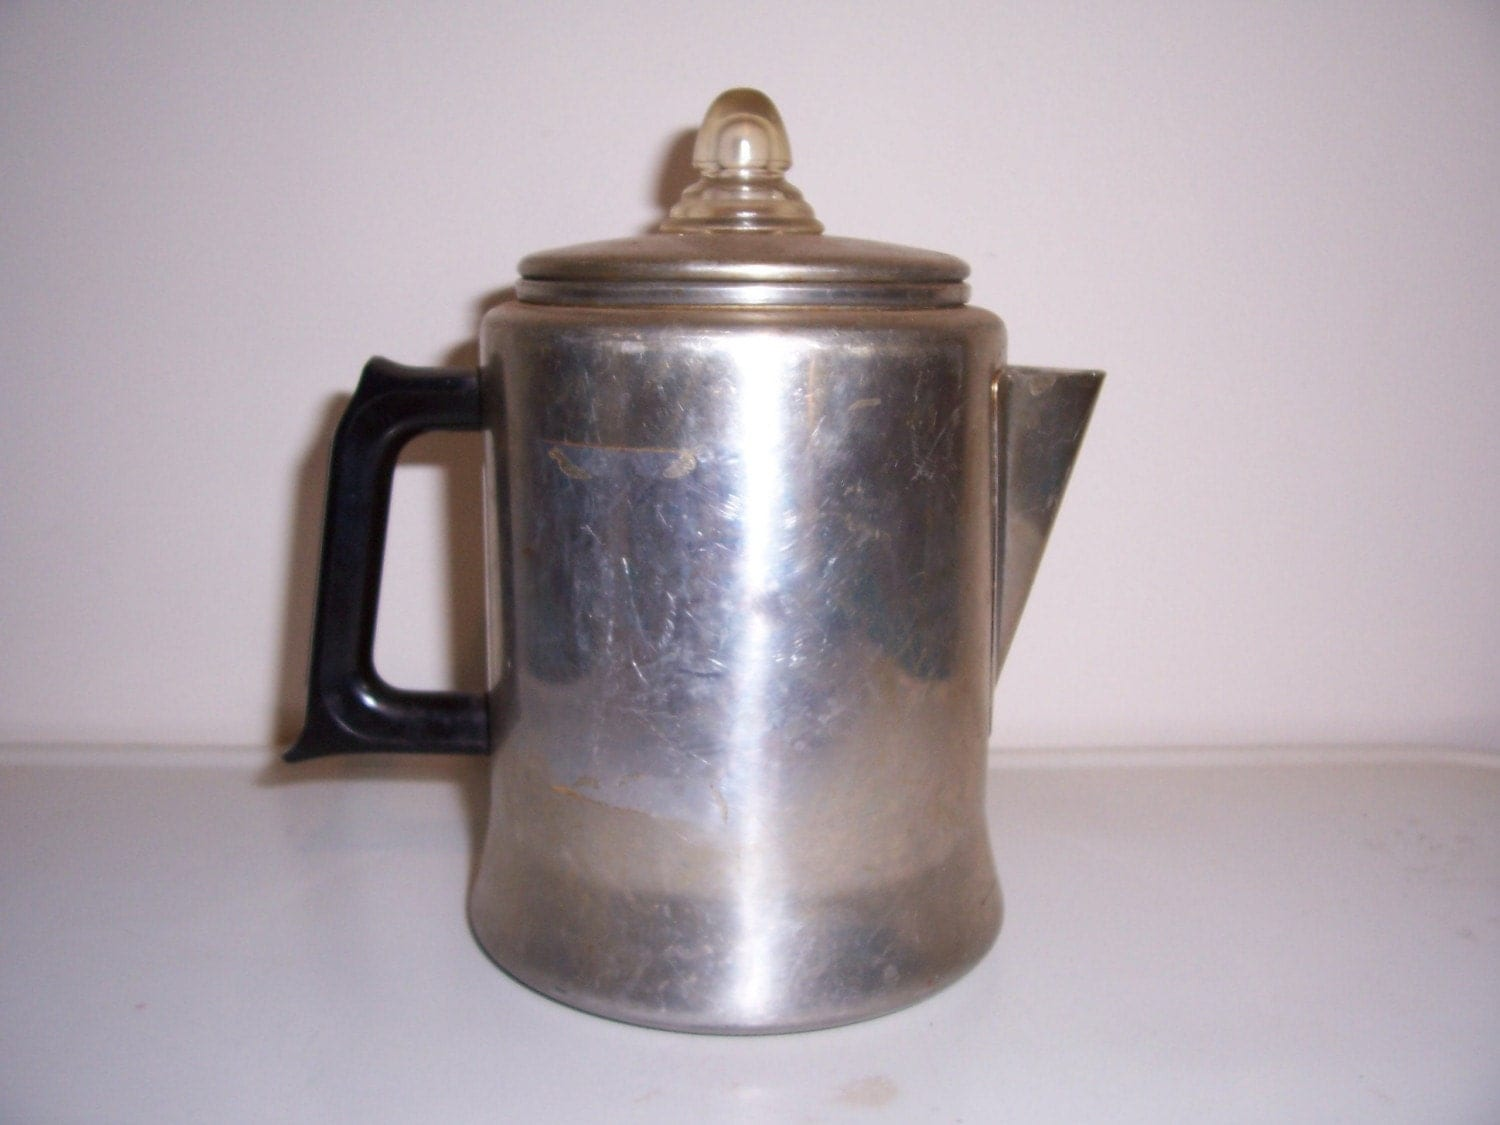 Coffee Pot Planter Vintage Aluminum Coffee Pot Percolator By Nimblesnook On Etsy